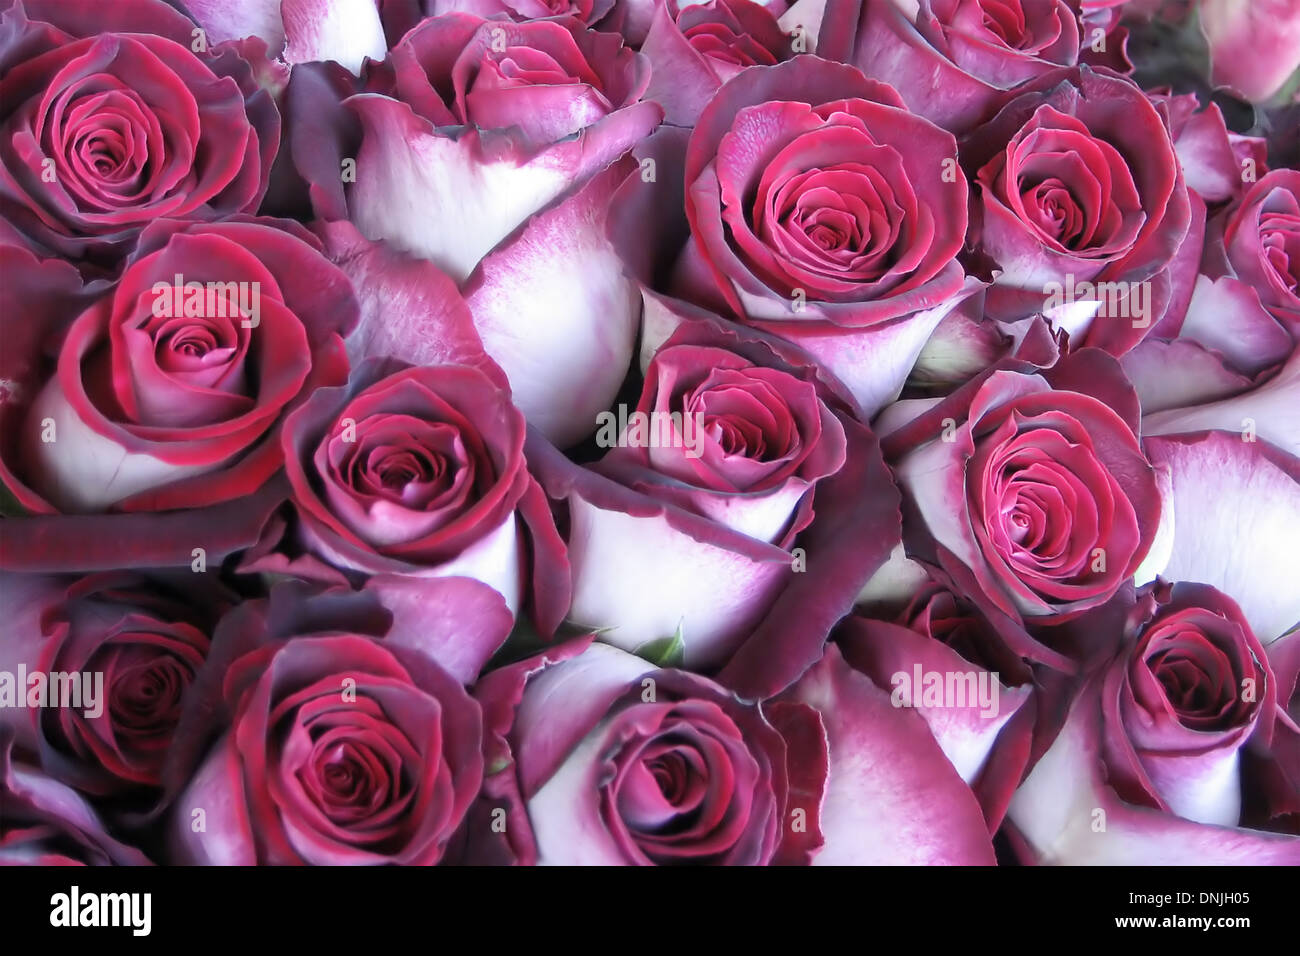 Roses with velvety petals - Stock Image